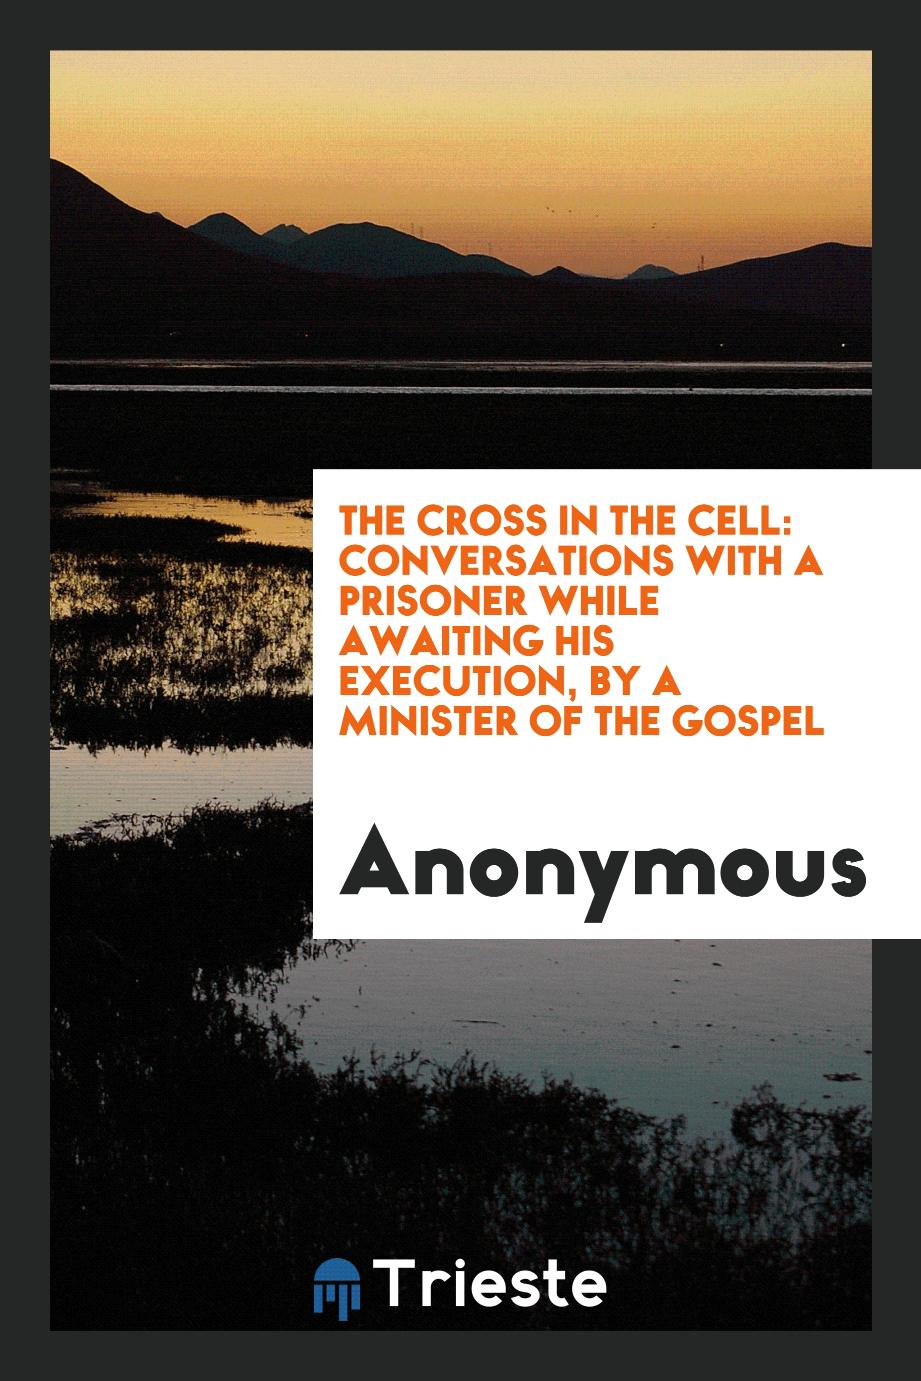 The Cross in the Cell: Conversations with a Prisoner While Awaiting His Execution, by a Minister of the Gospel